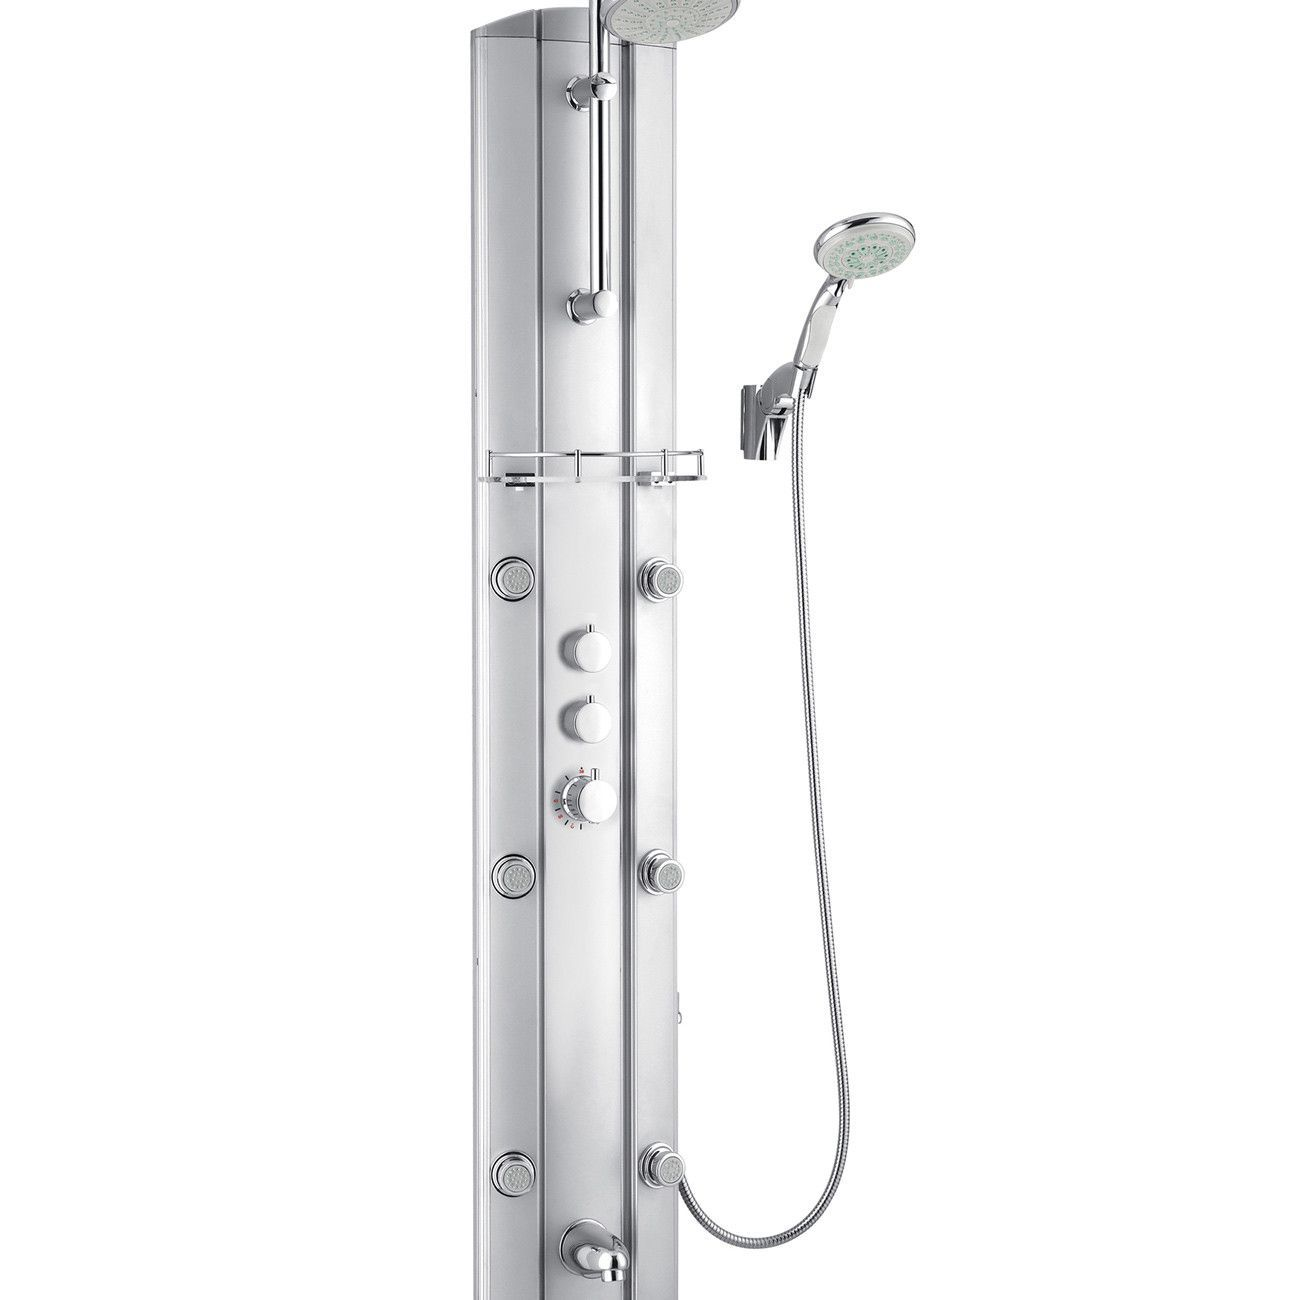 DreamLine SHCM-23580 Hydrotherapy Shower Panel with Shower Accessory ...